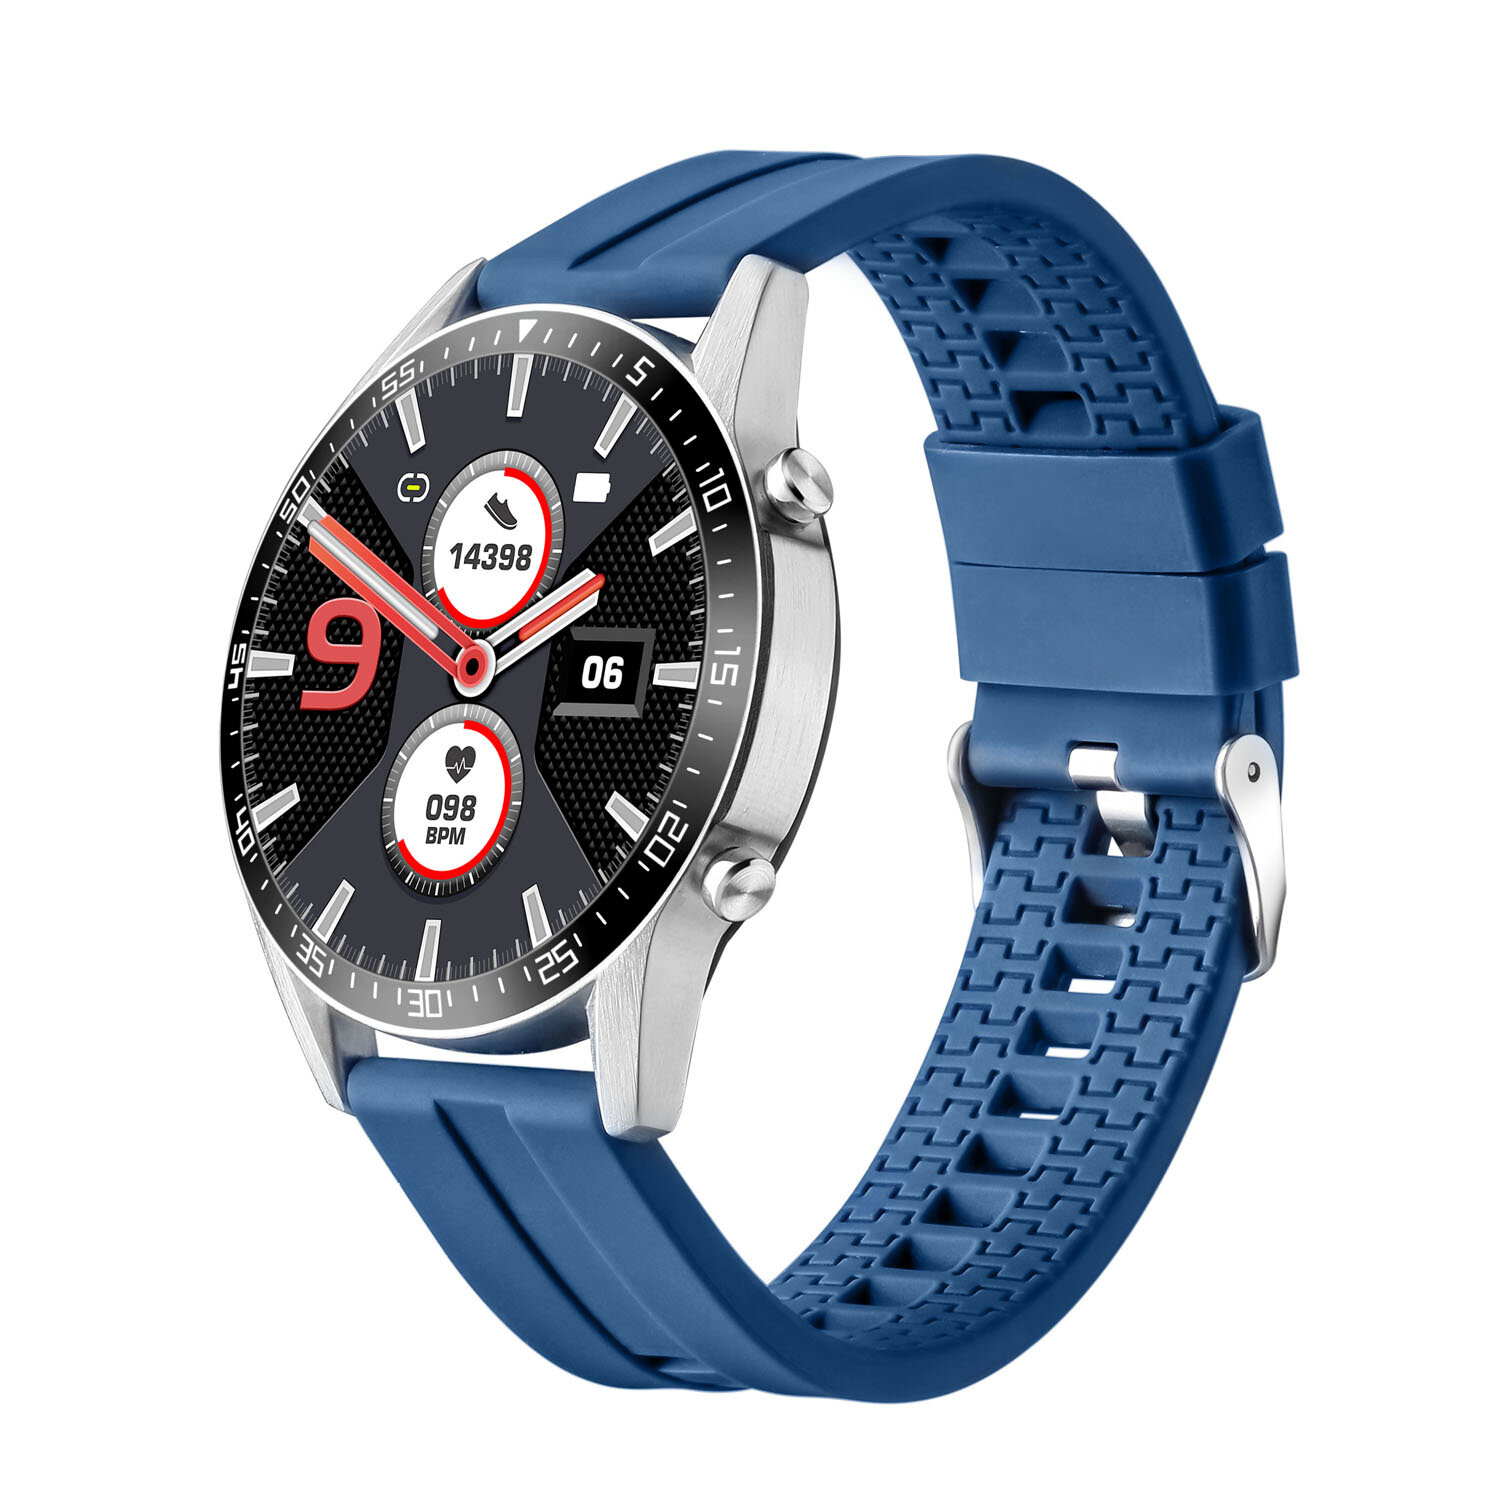 Bakeey GTX 1.3inch Full-round Touch Screen 24h Heart Rate Blood Pressure Oxygen Monitor Music Contorl Weather Push Smart